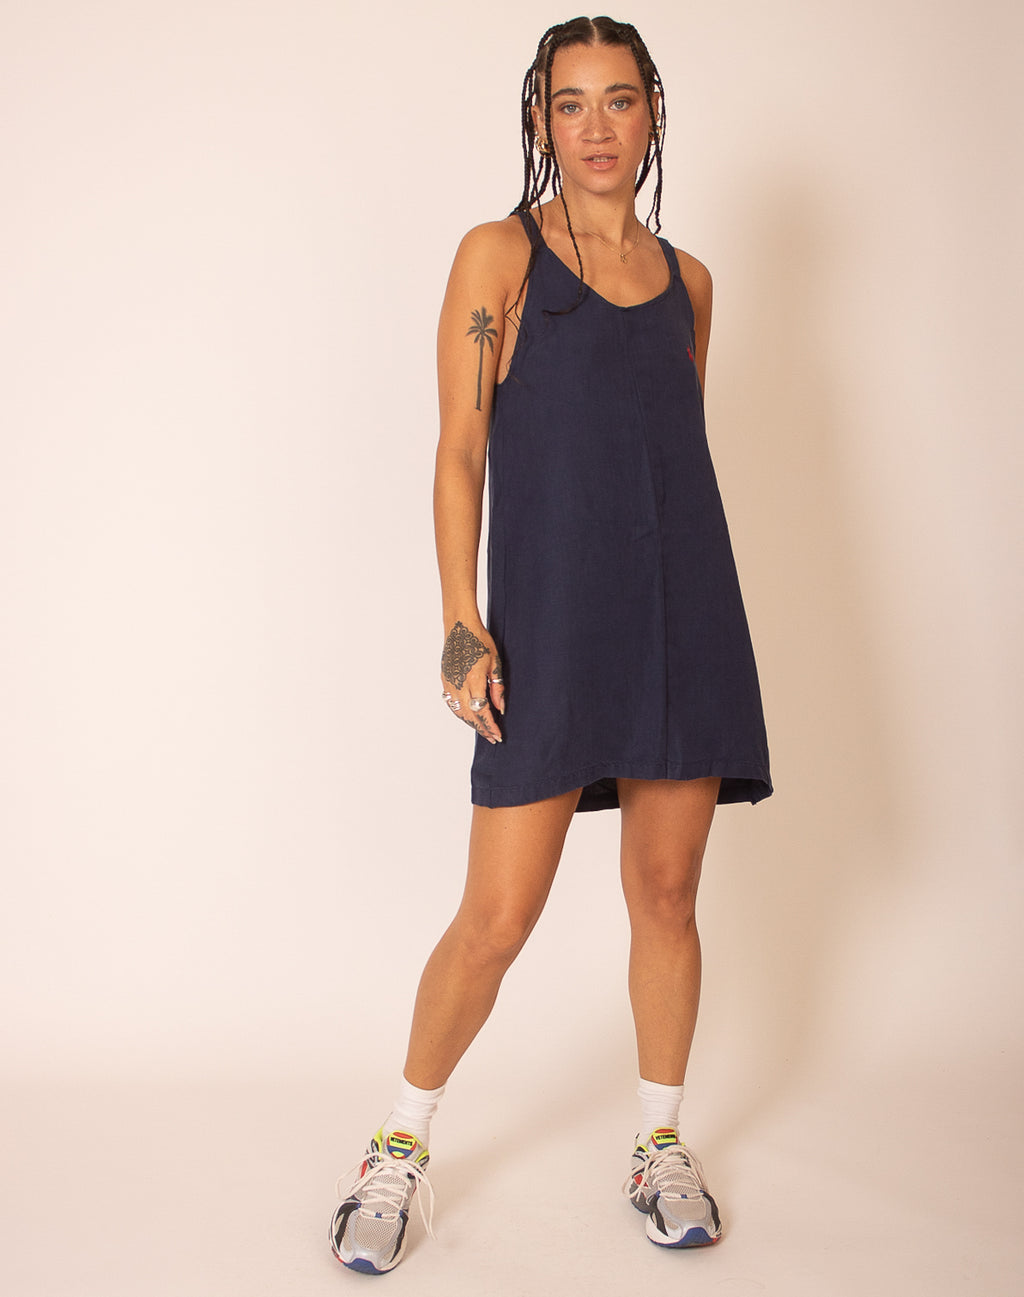 RALPH LAUREN NAVY BLUE OLLIE SLIP DRESS